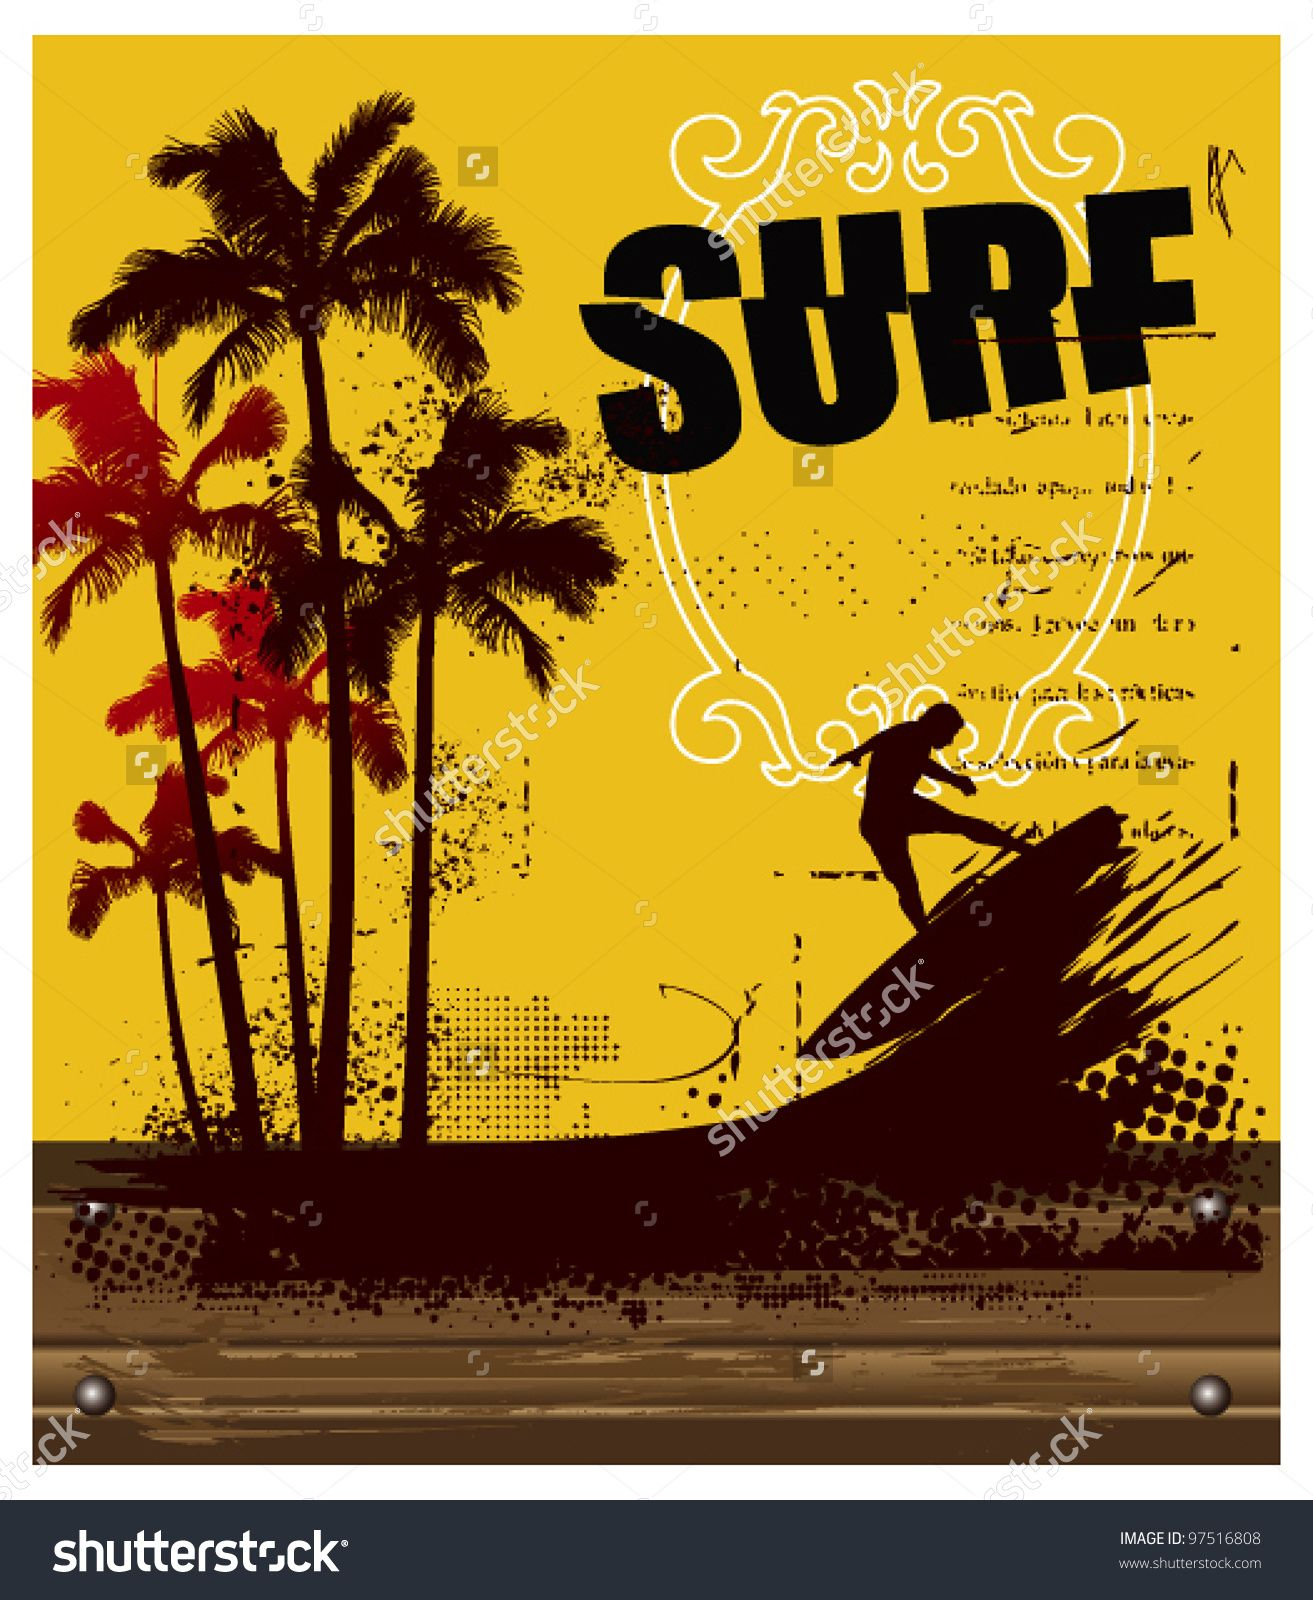 Vintage Surf Posters - Google Search